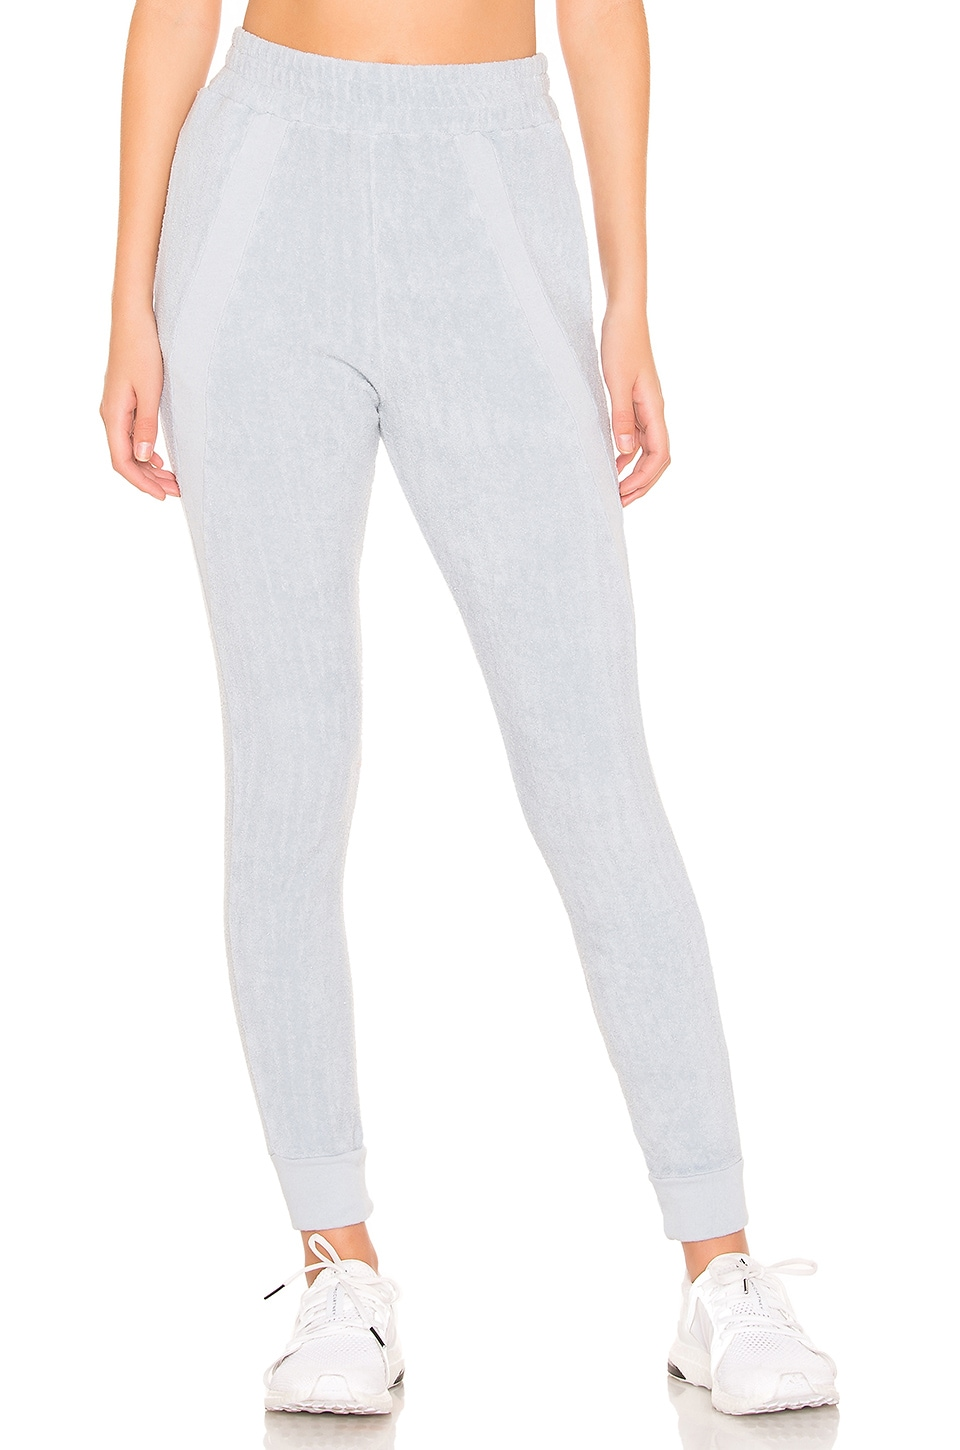 Vimmia Warmth Jogger in Mist